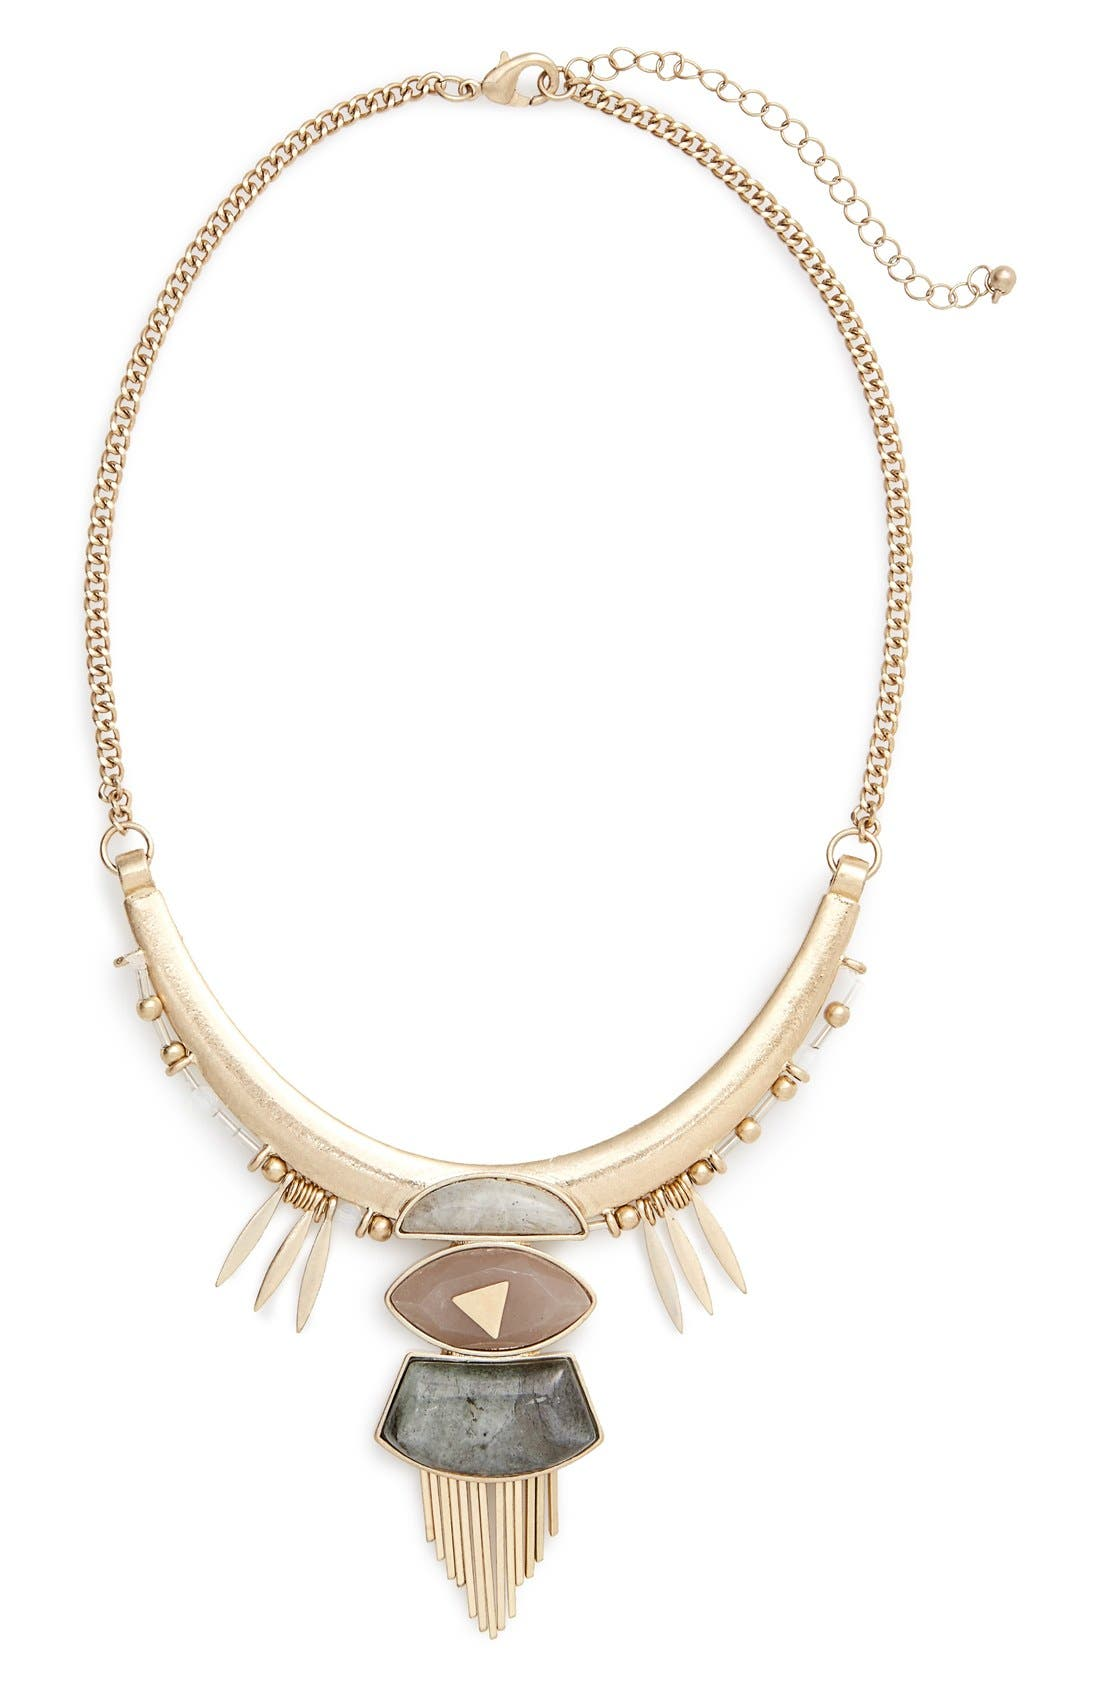 Alternate Image 1 Selected - Danielle Nicole 'Great Warrior' Collar Necklace